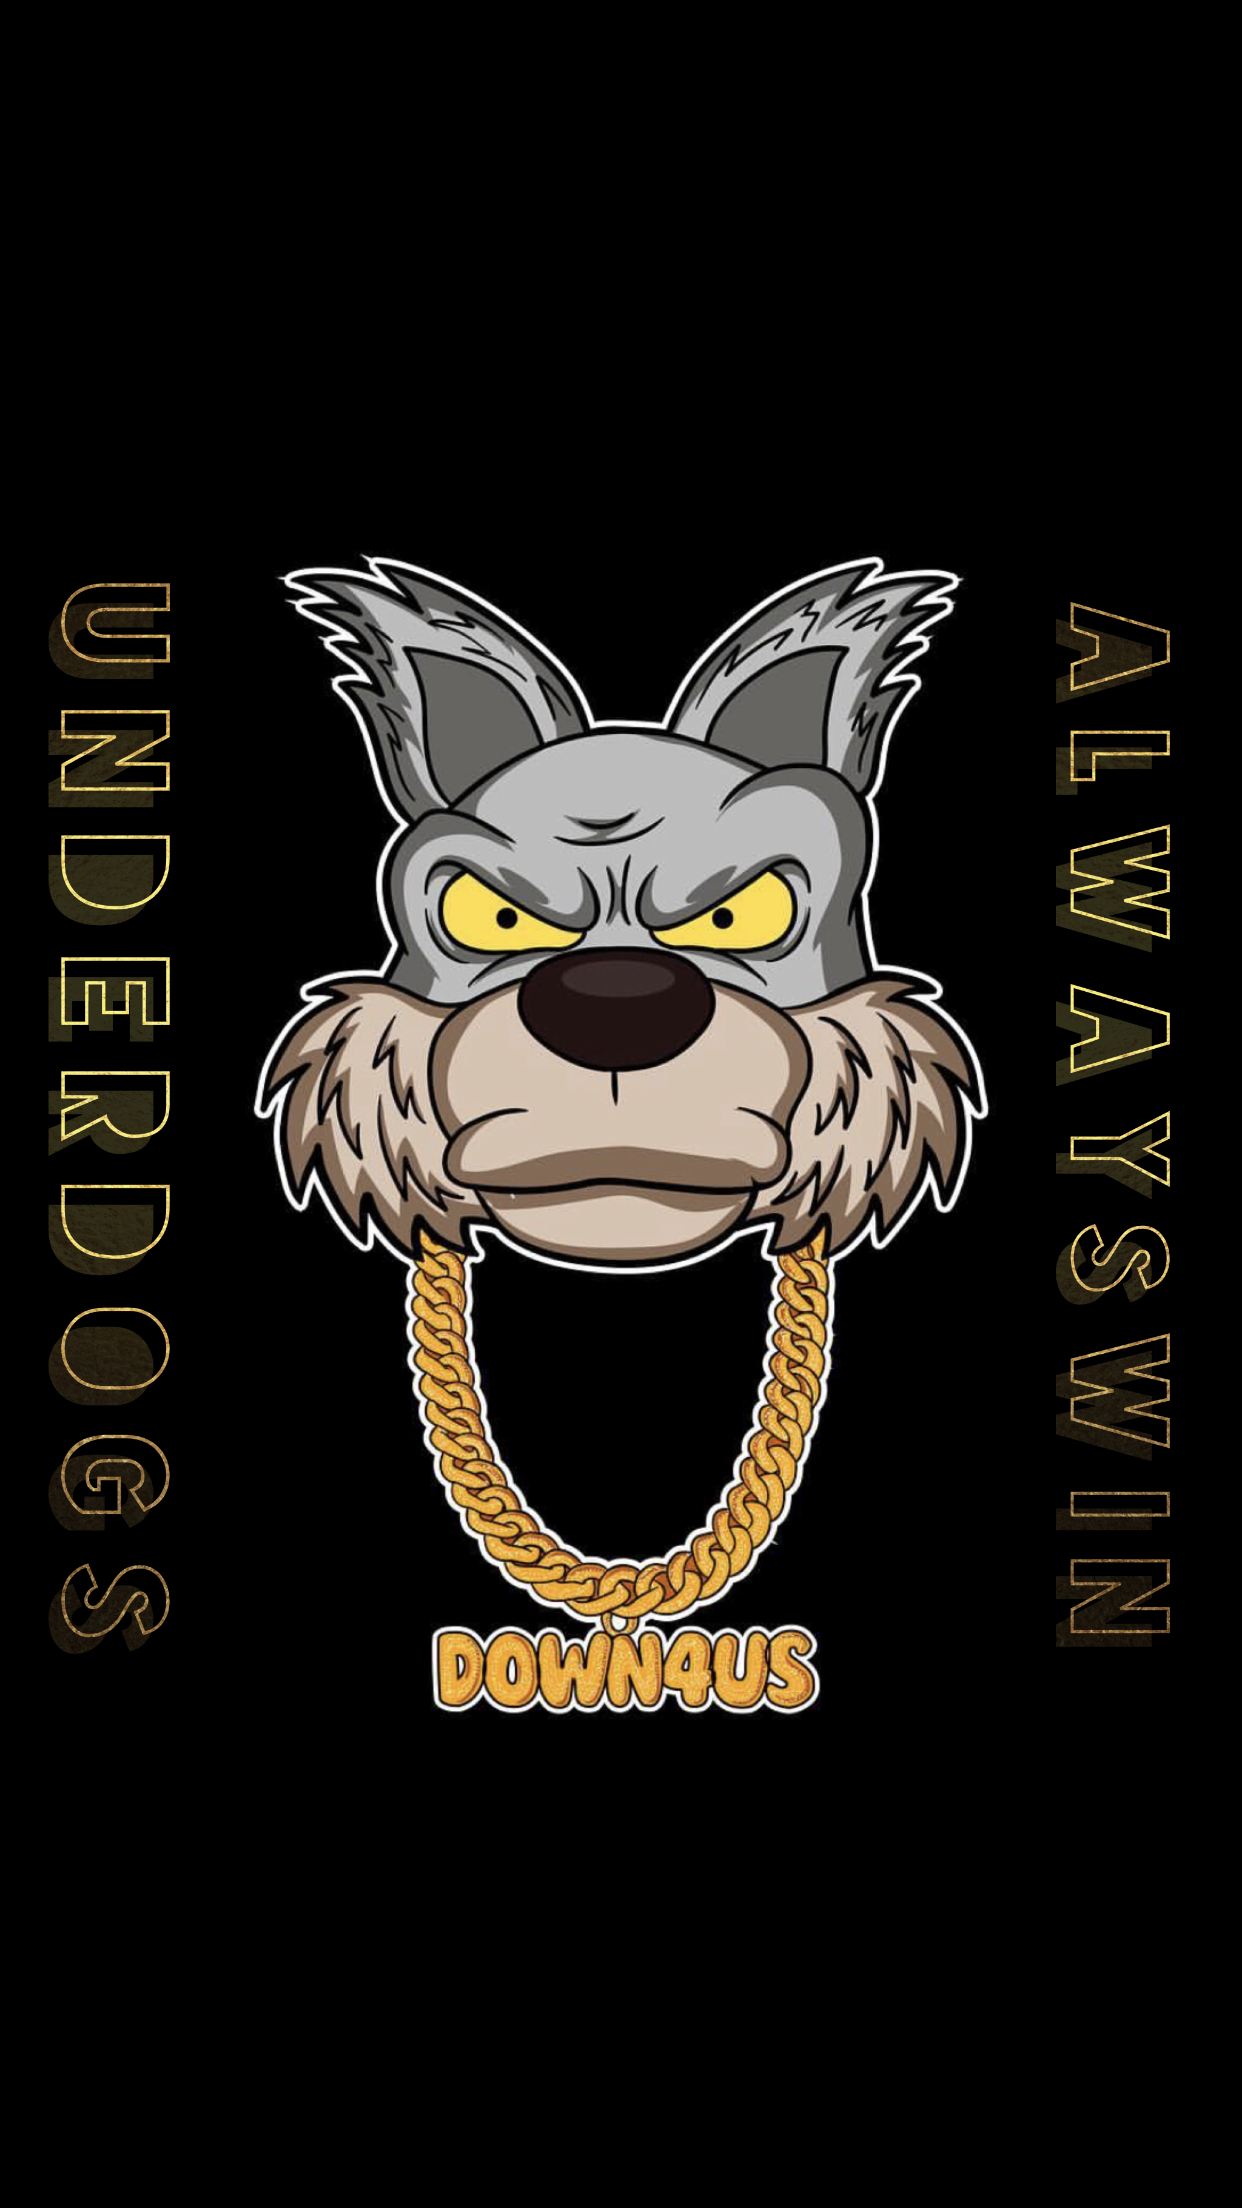 Underdogs always win 6 song Ep from The Down4us team Newest project of 2018 giving you summer vibes with a substance feat a song Places to be by Wordplay & Iamsu soon to be a summer hit . This whole project gives you lyrics and Head nods Enjoy